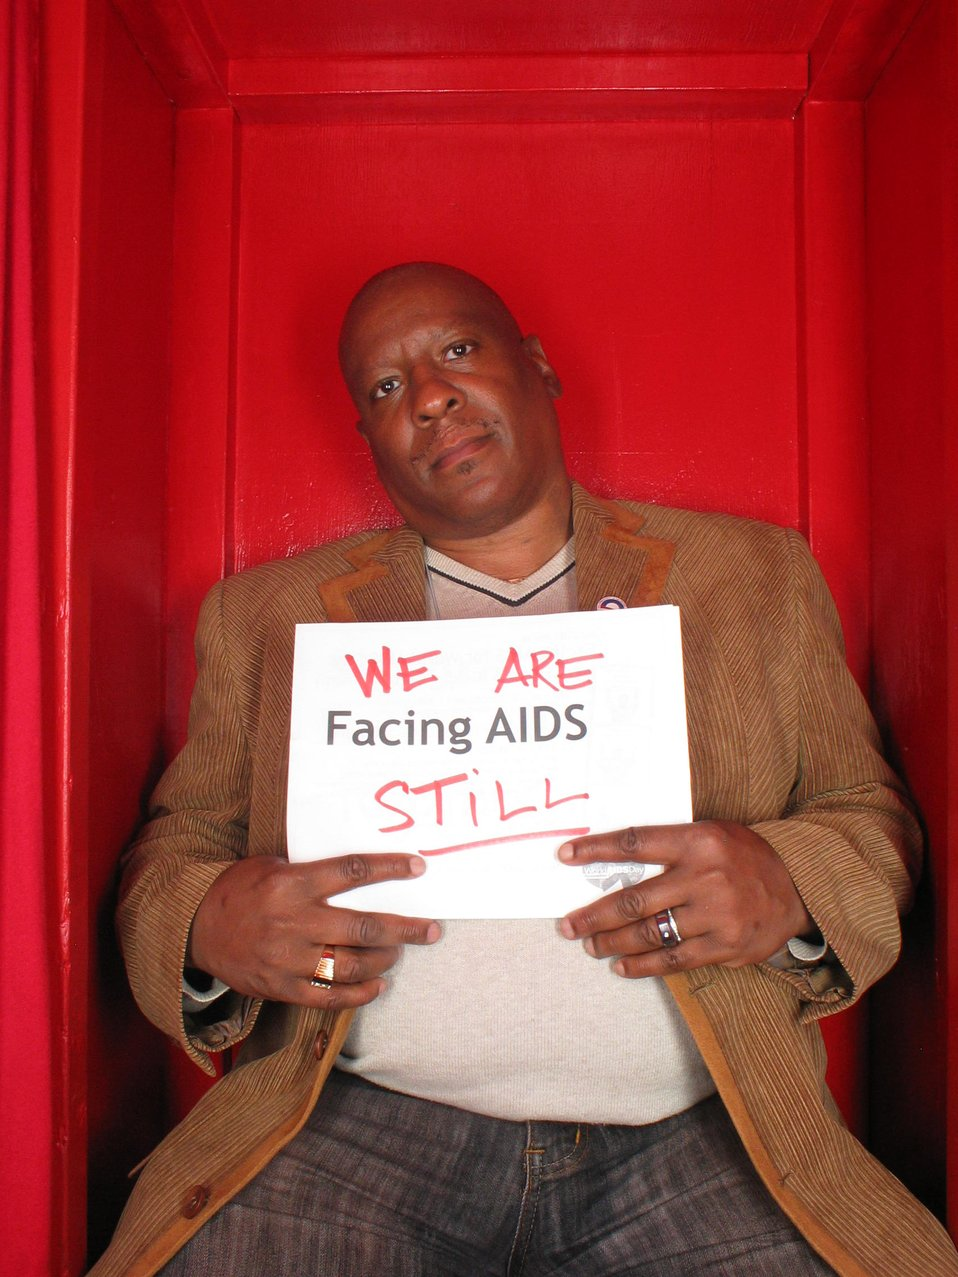 We are Facing AIDS still